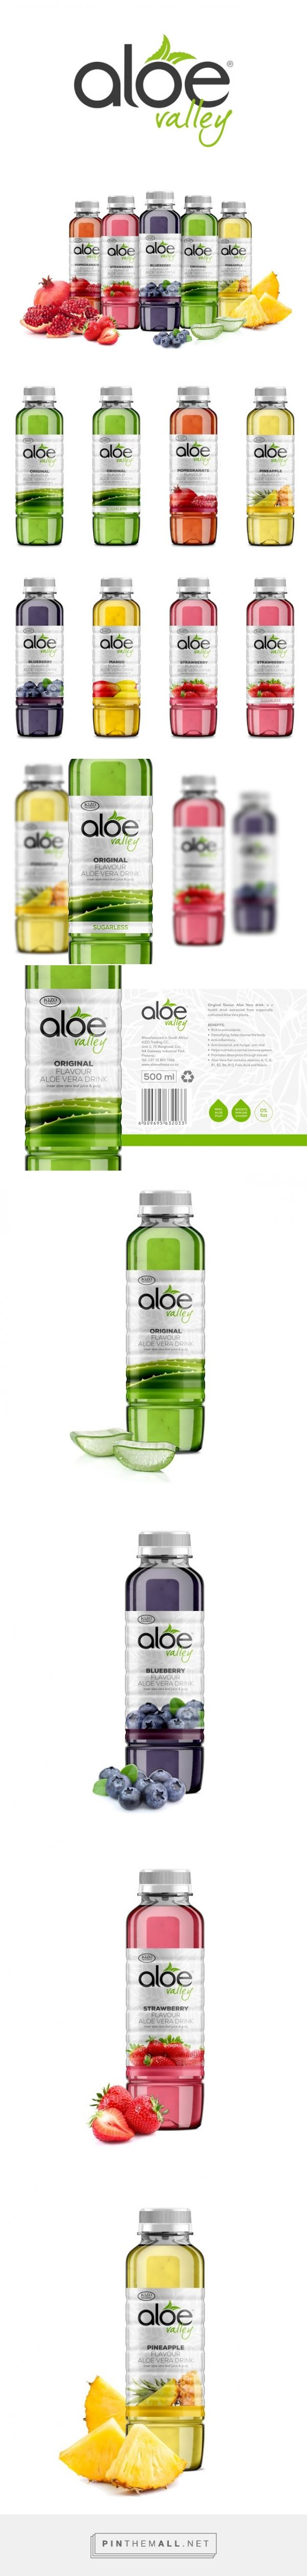 Aloe Valley Drinks Packaging of the World - Creative Package Design Gallery - http://www.packagingoftheworld.com/2015/10/aloe-valley-drinks.html